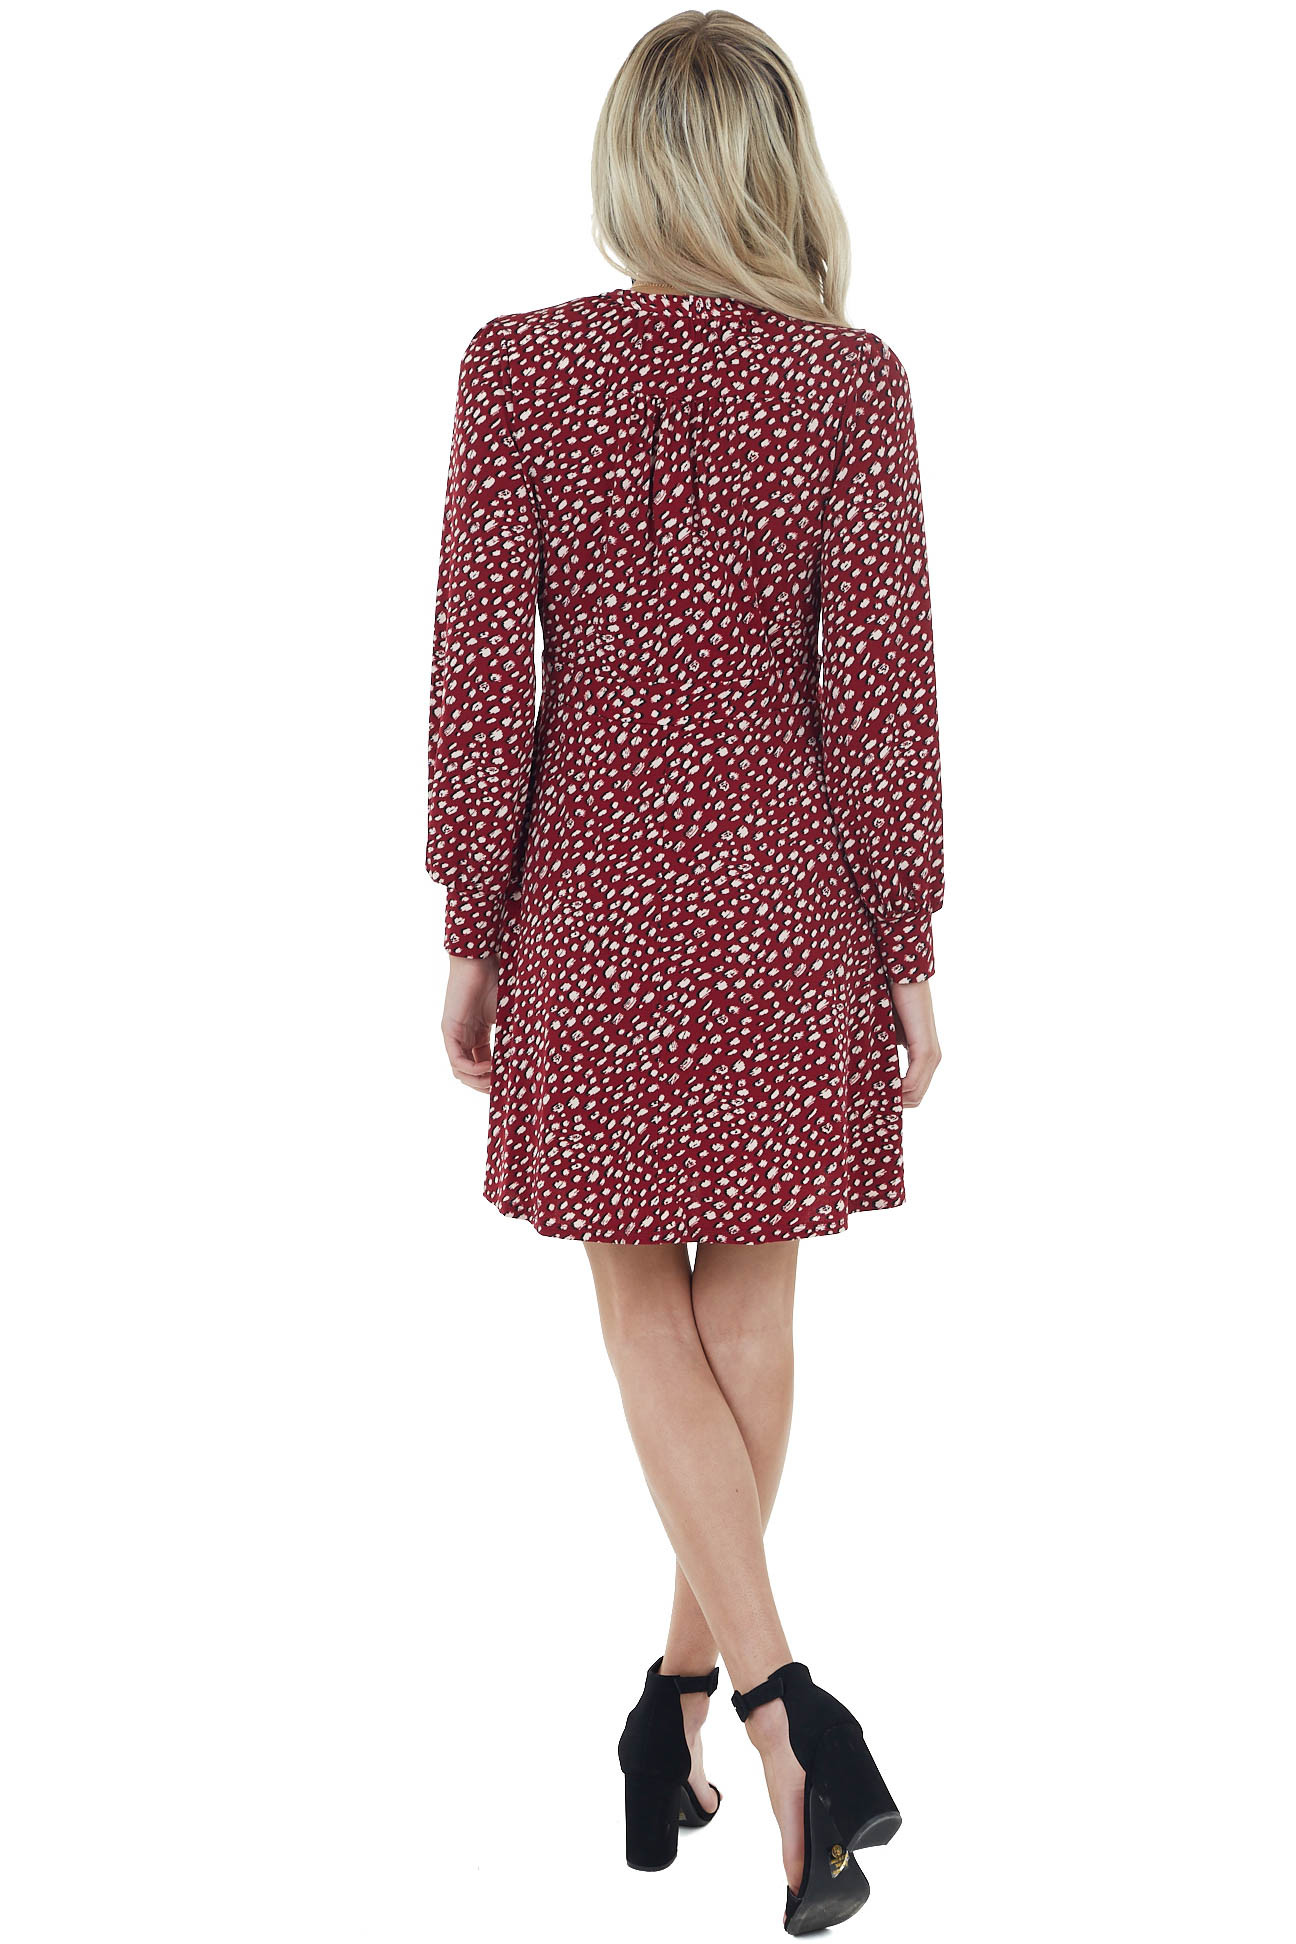 Wine Printed Surplice Dress with Long Bubble Sleeves